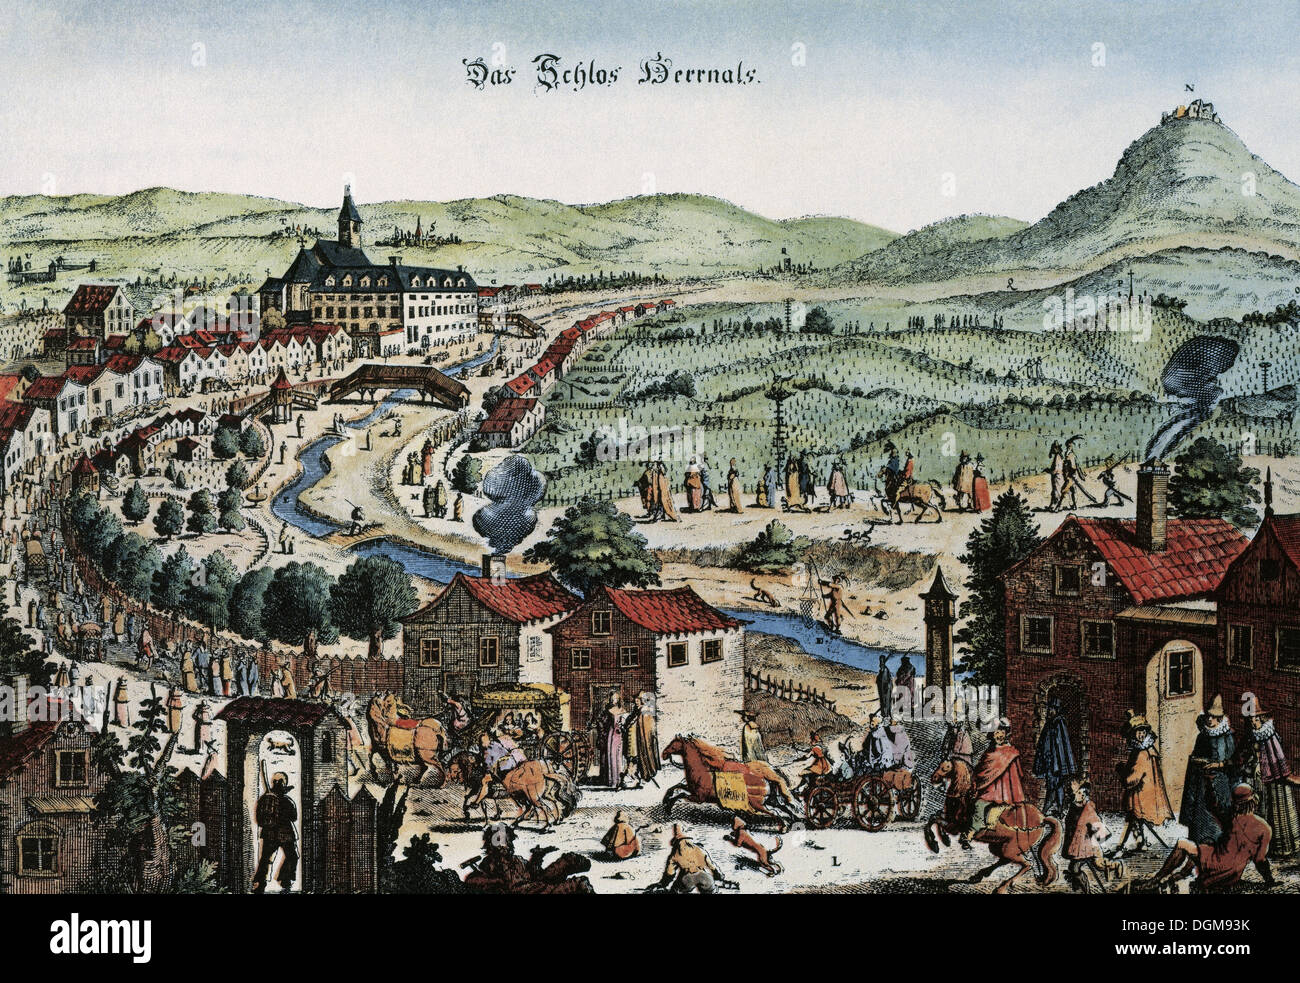 Austria. Vienna. Panorama of the city. Engraving, late 17th century, before being besieged by the Turks in 1683. - Stock Image